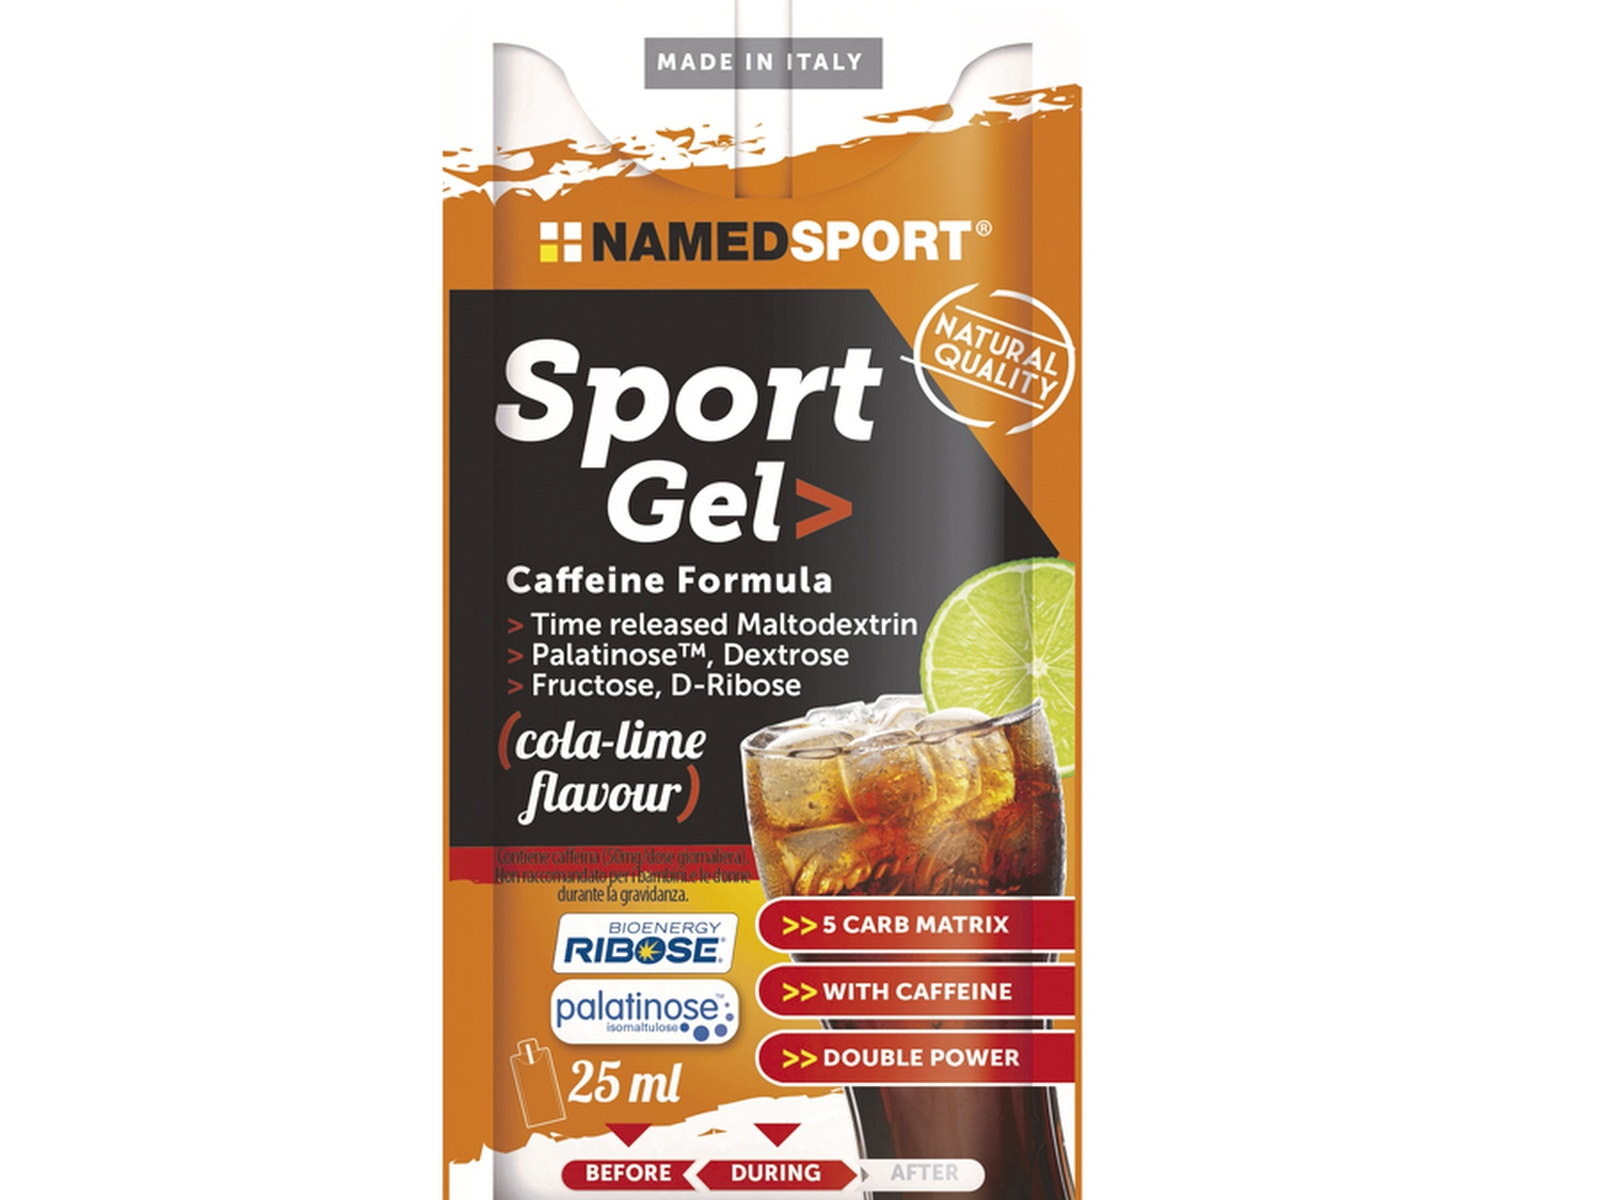 NAMED SPORT GEL CAFFEINE FORMULA 25ML